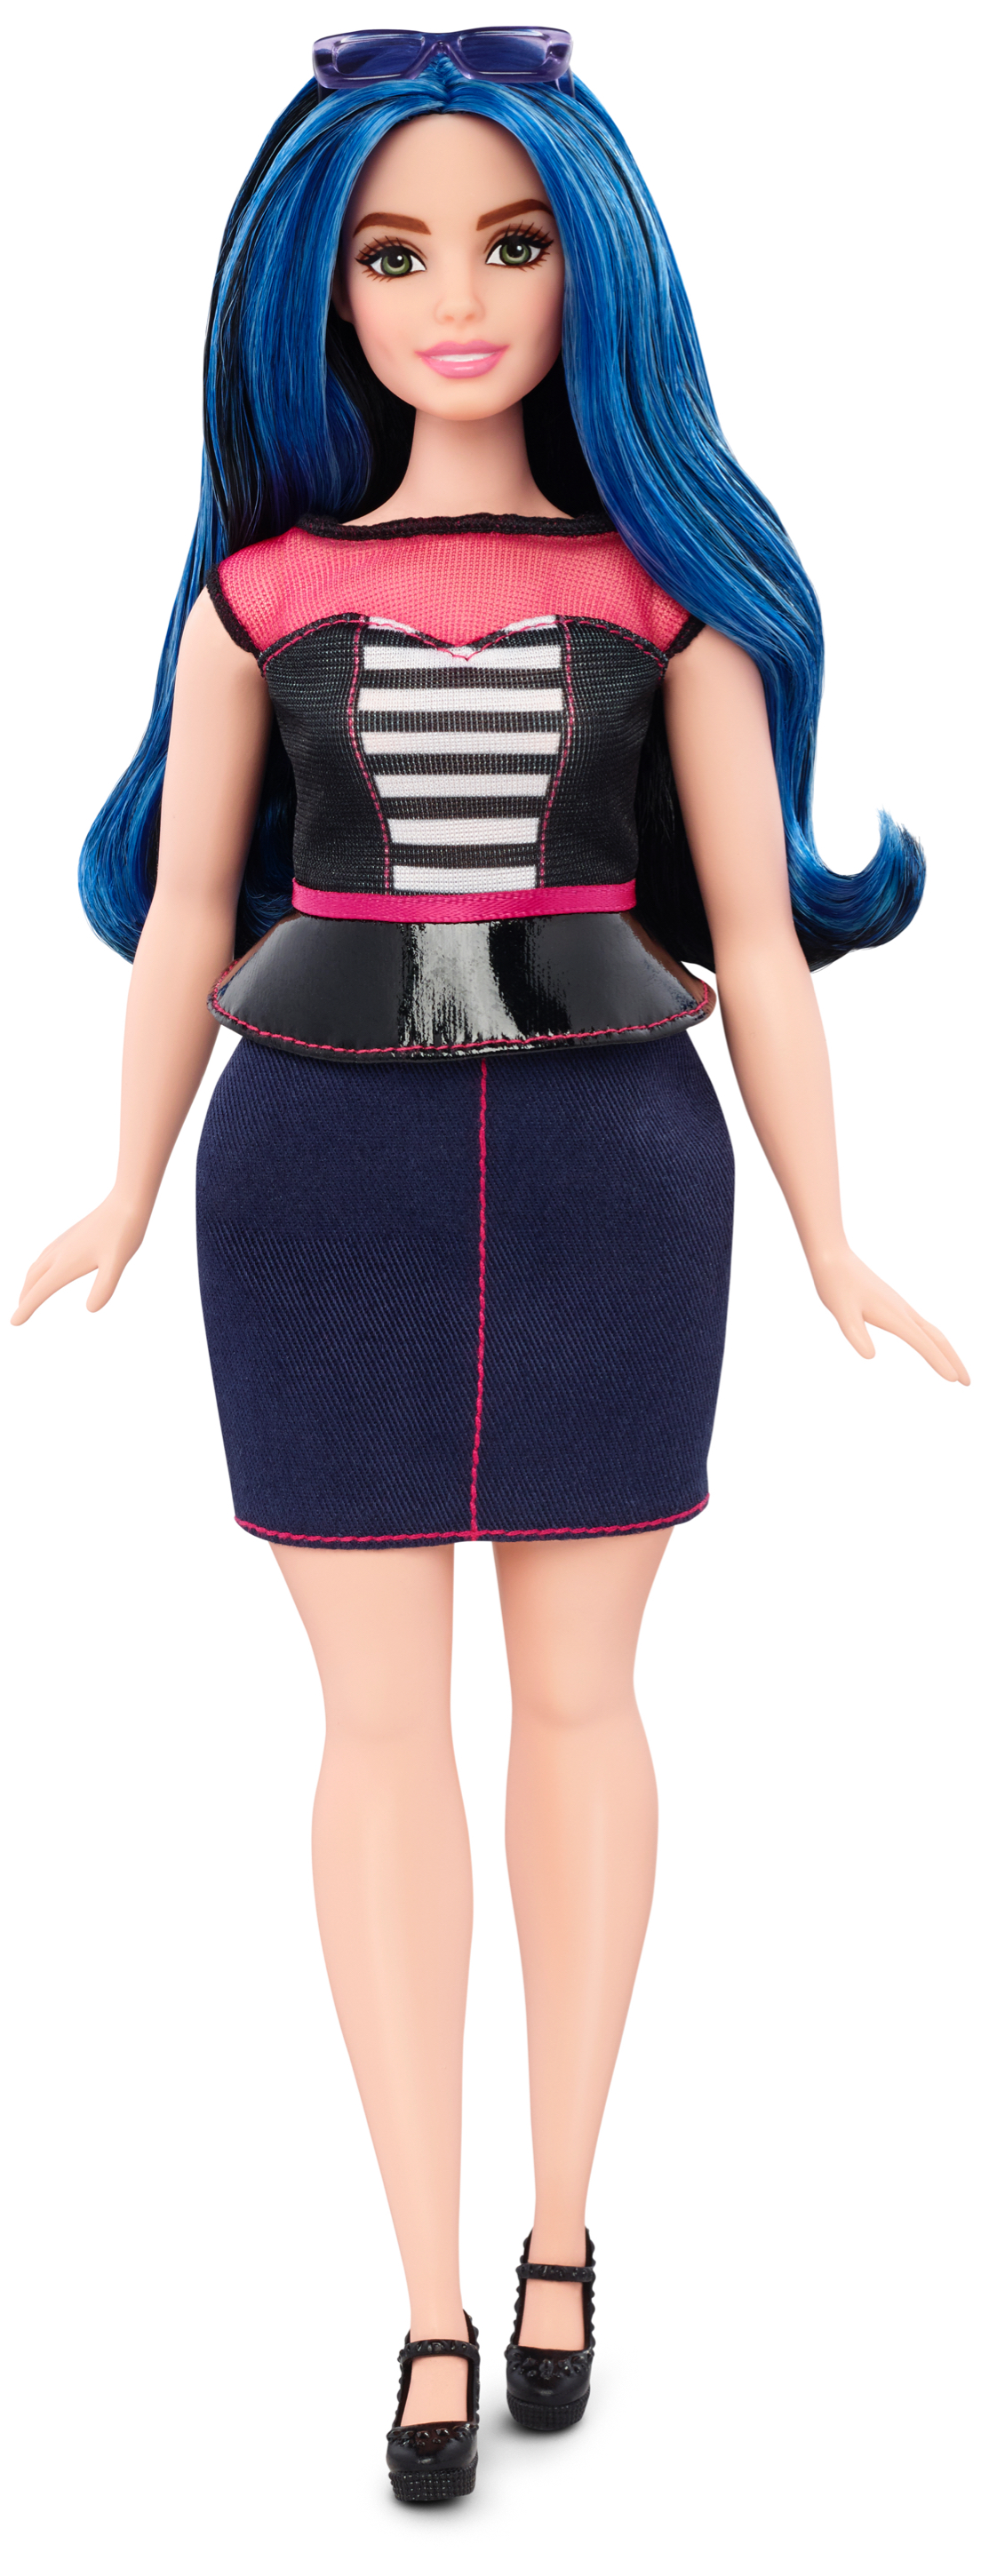 The curvy Barbie